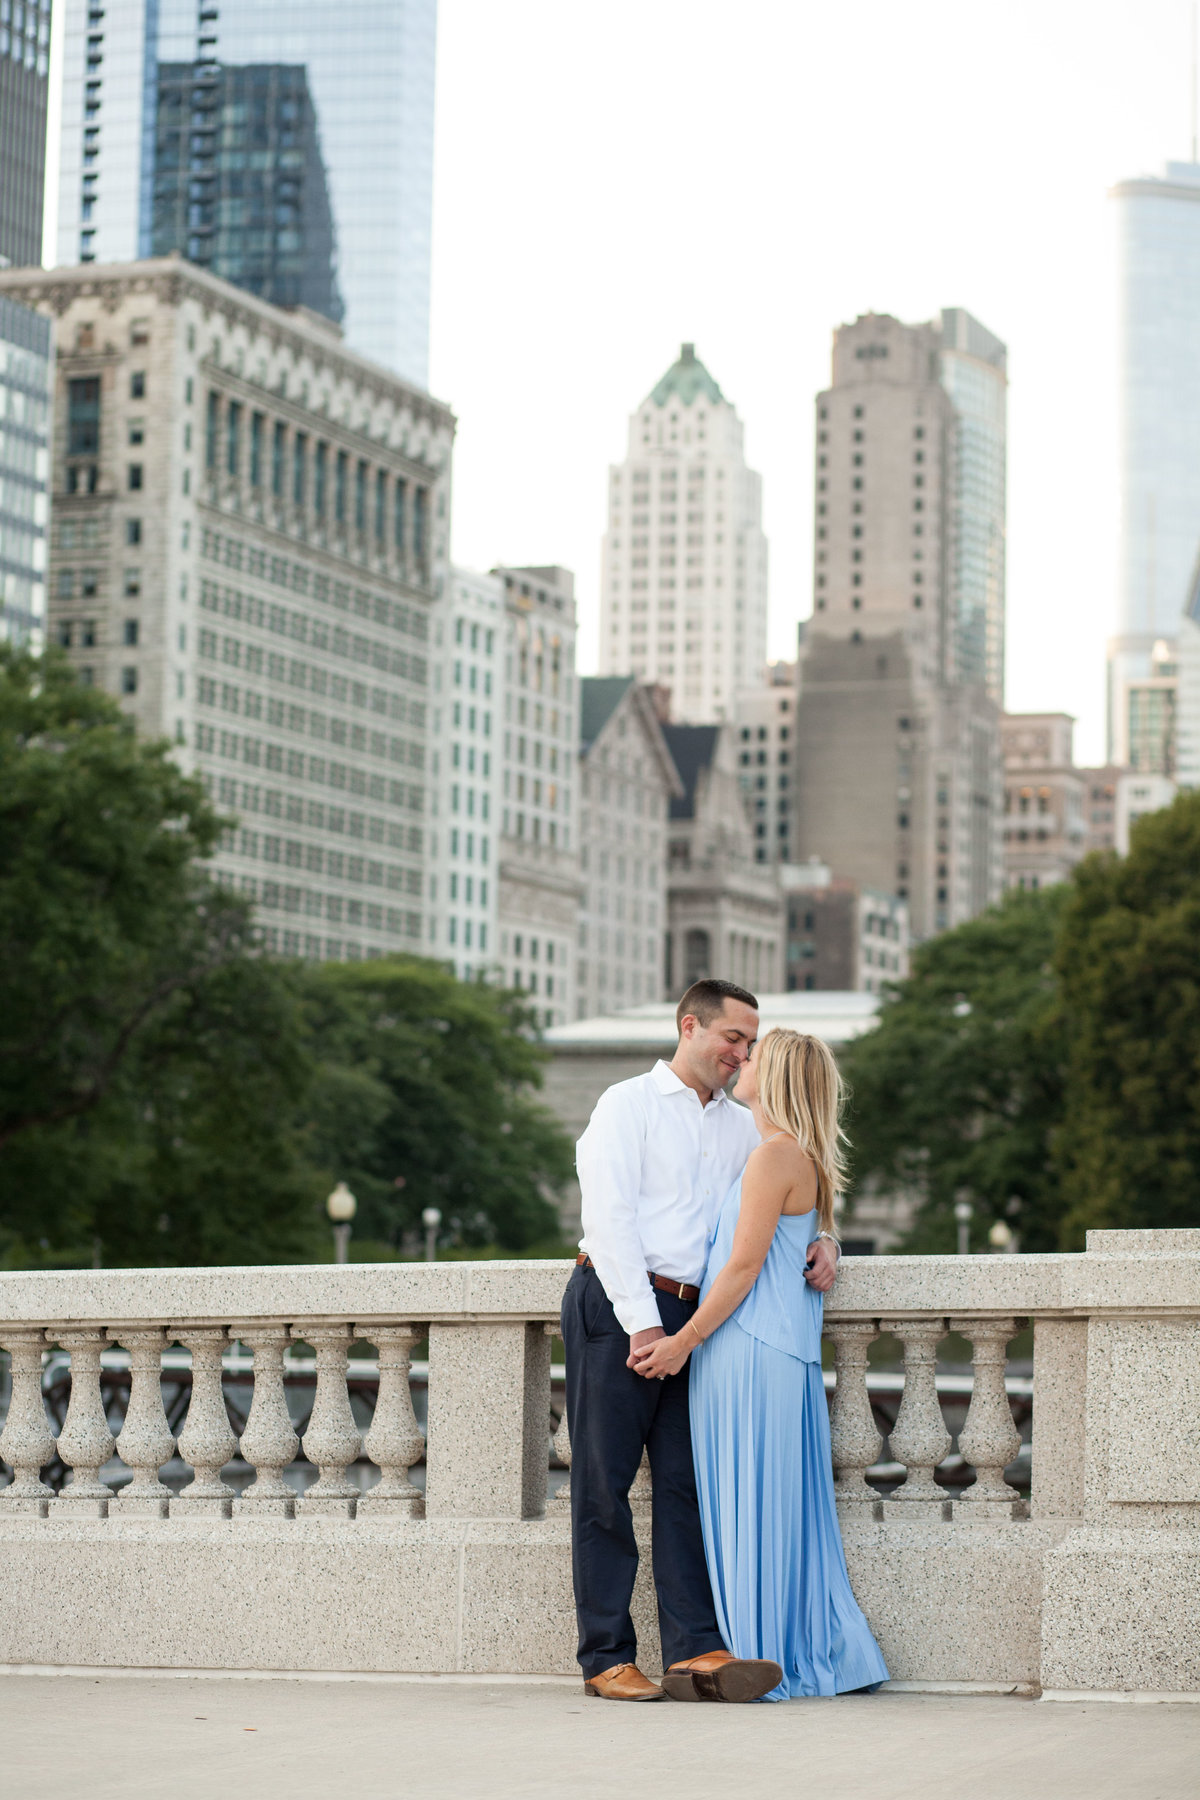 Caitlin and Matt - Natalie Probst Photography132